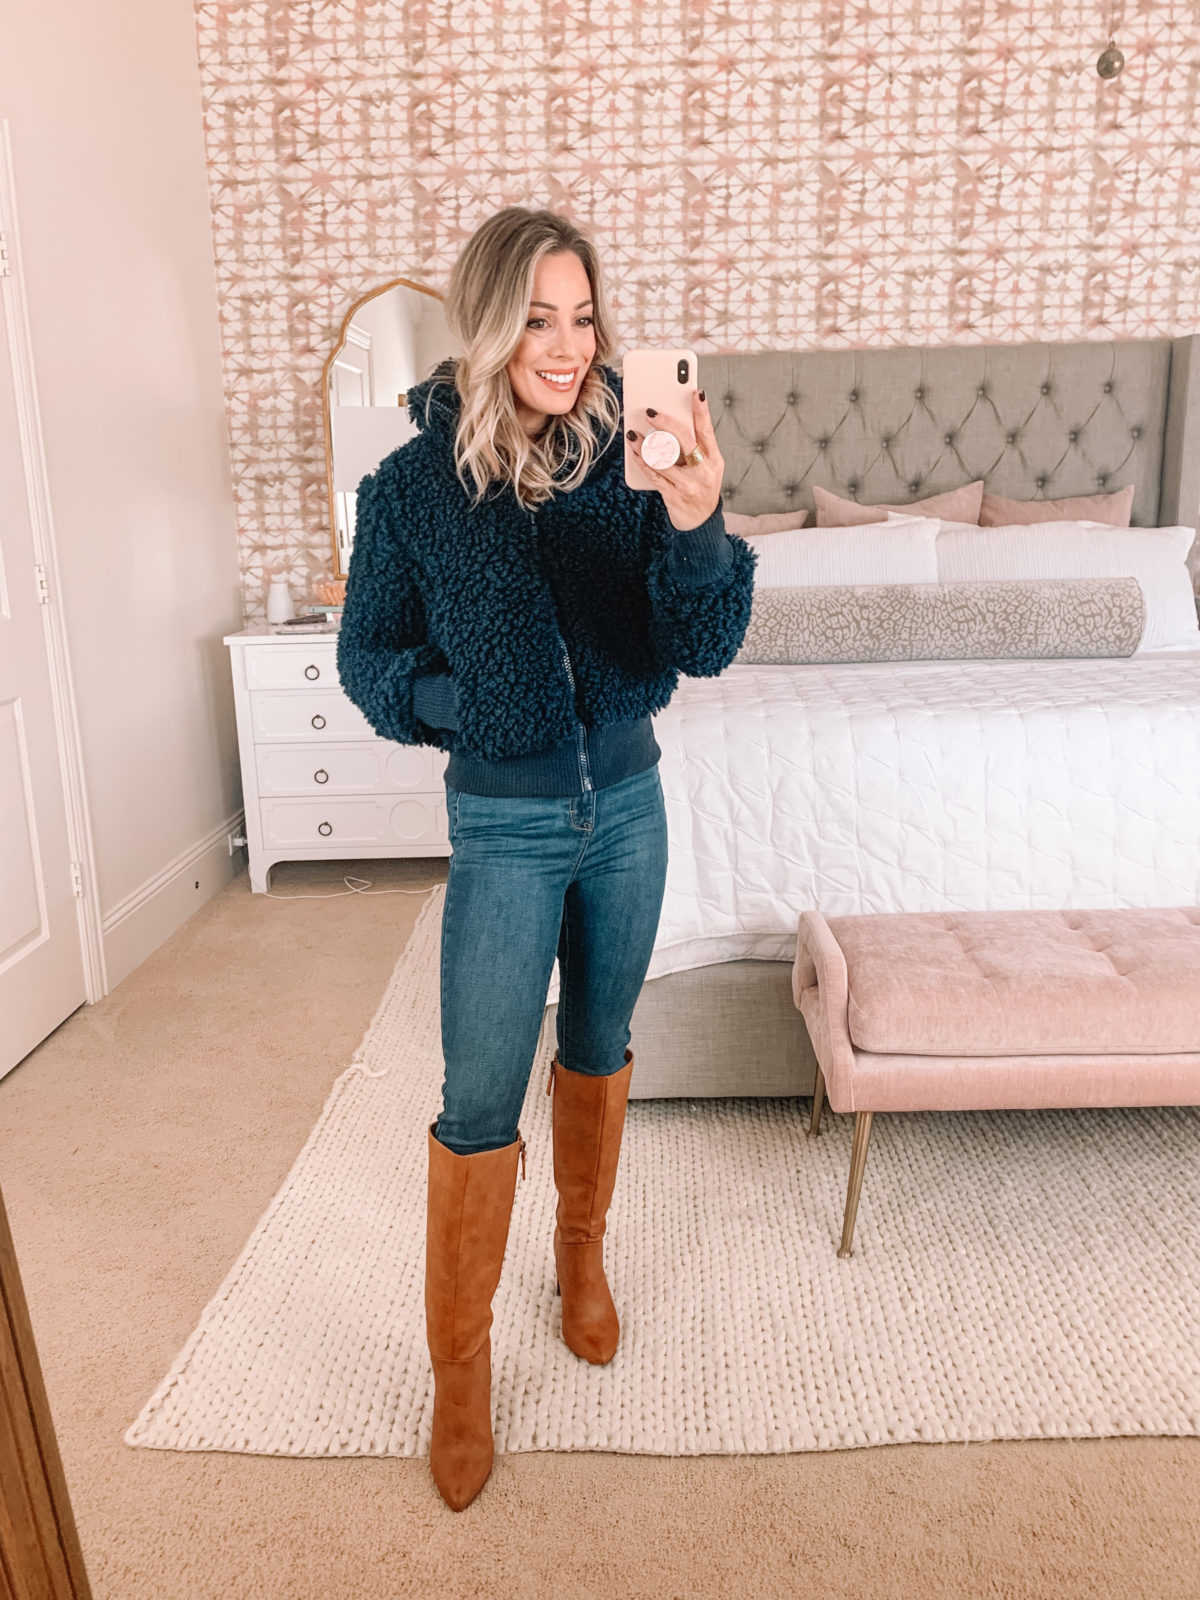 Walmart Fashion Finds, Teddy Bear Jacket, Jeans, Knee High Boots